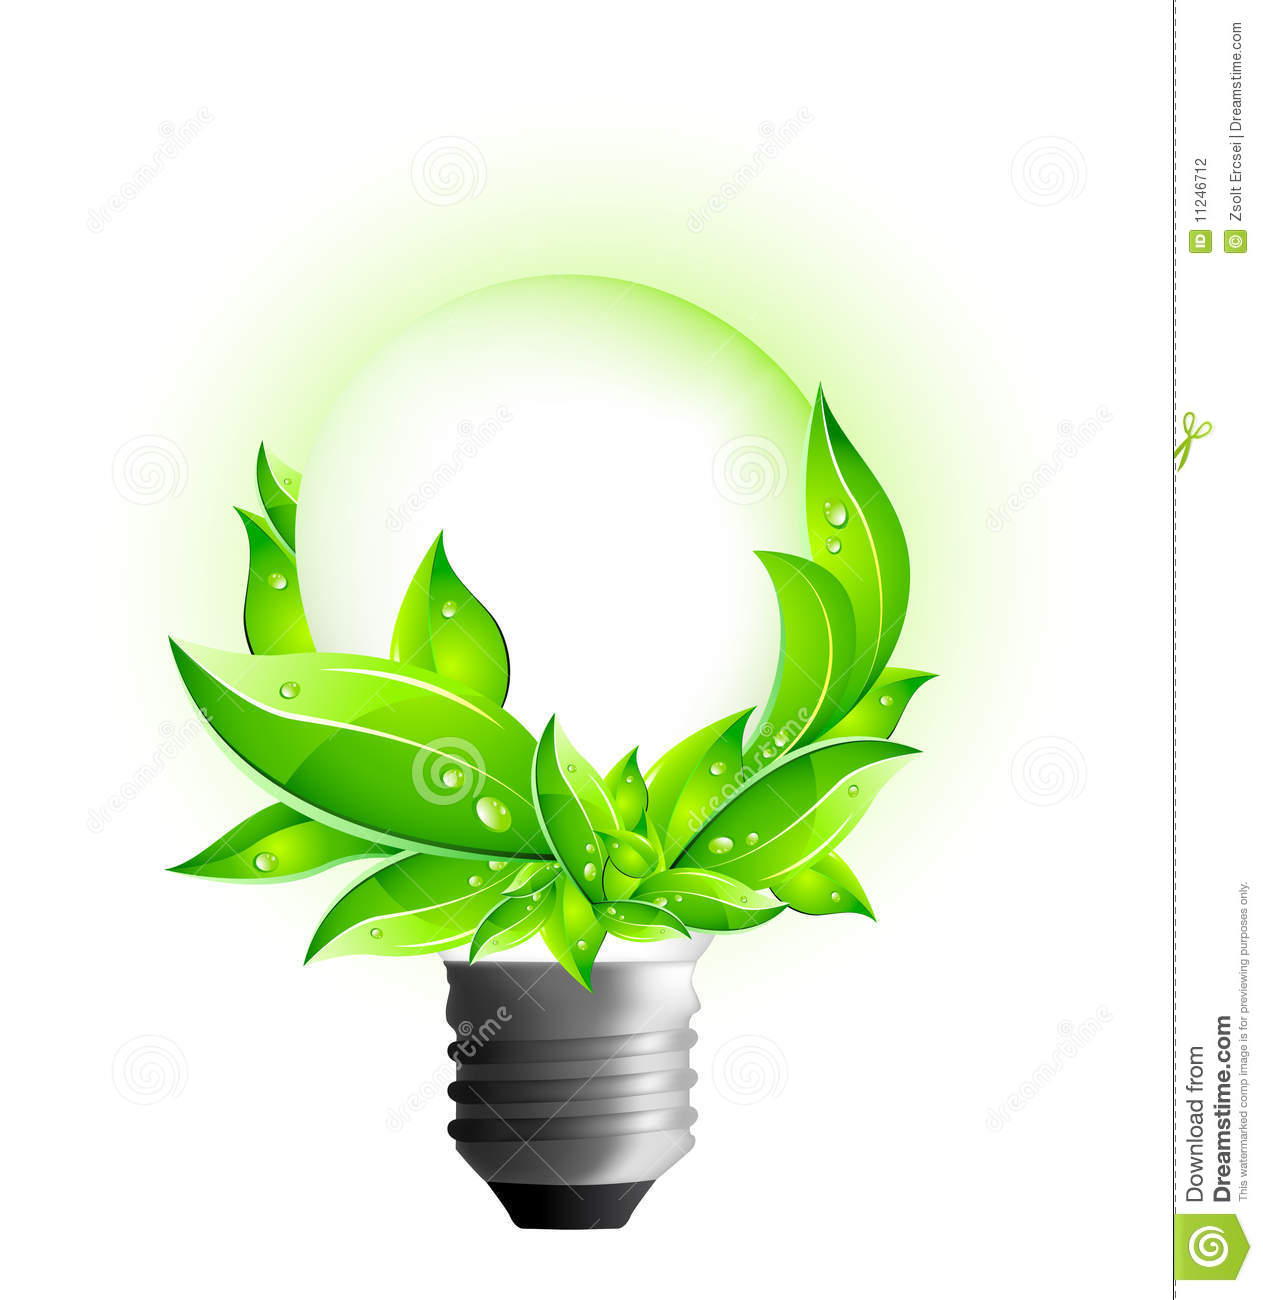 3d eco concept environmental light bulb stock. Black Bedroom Furniture Sets. Home Design Ideas